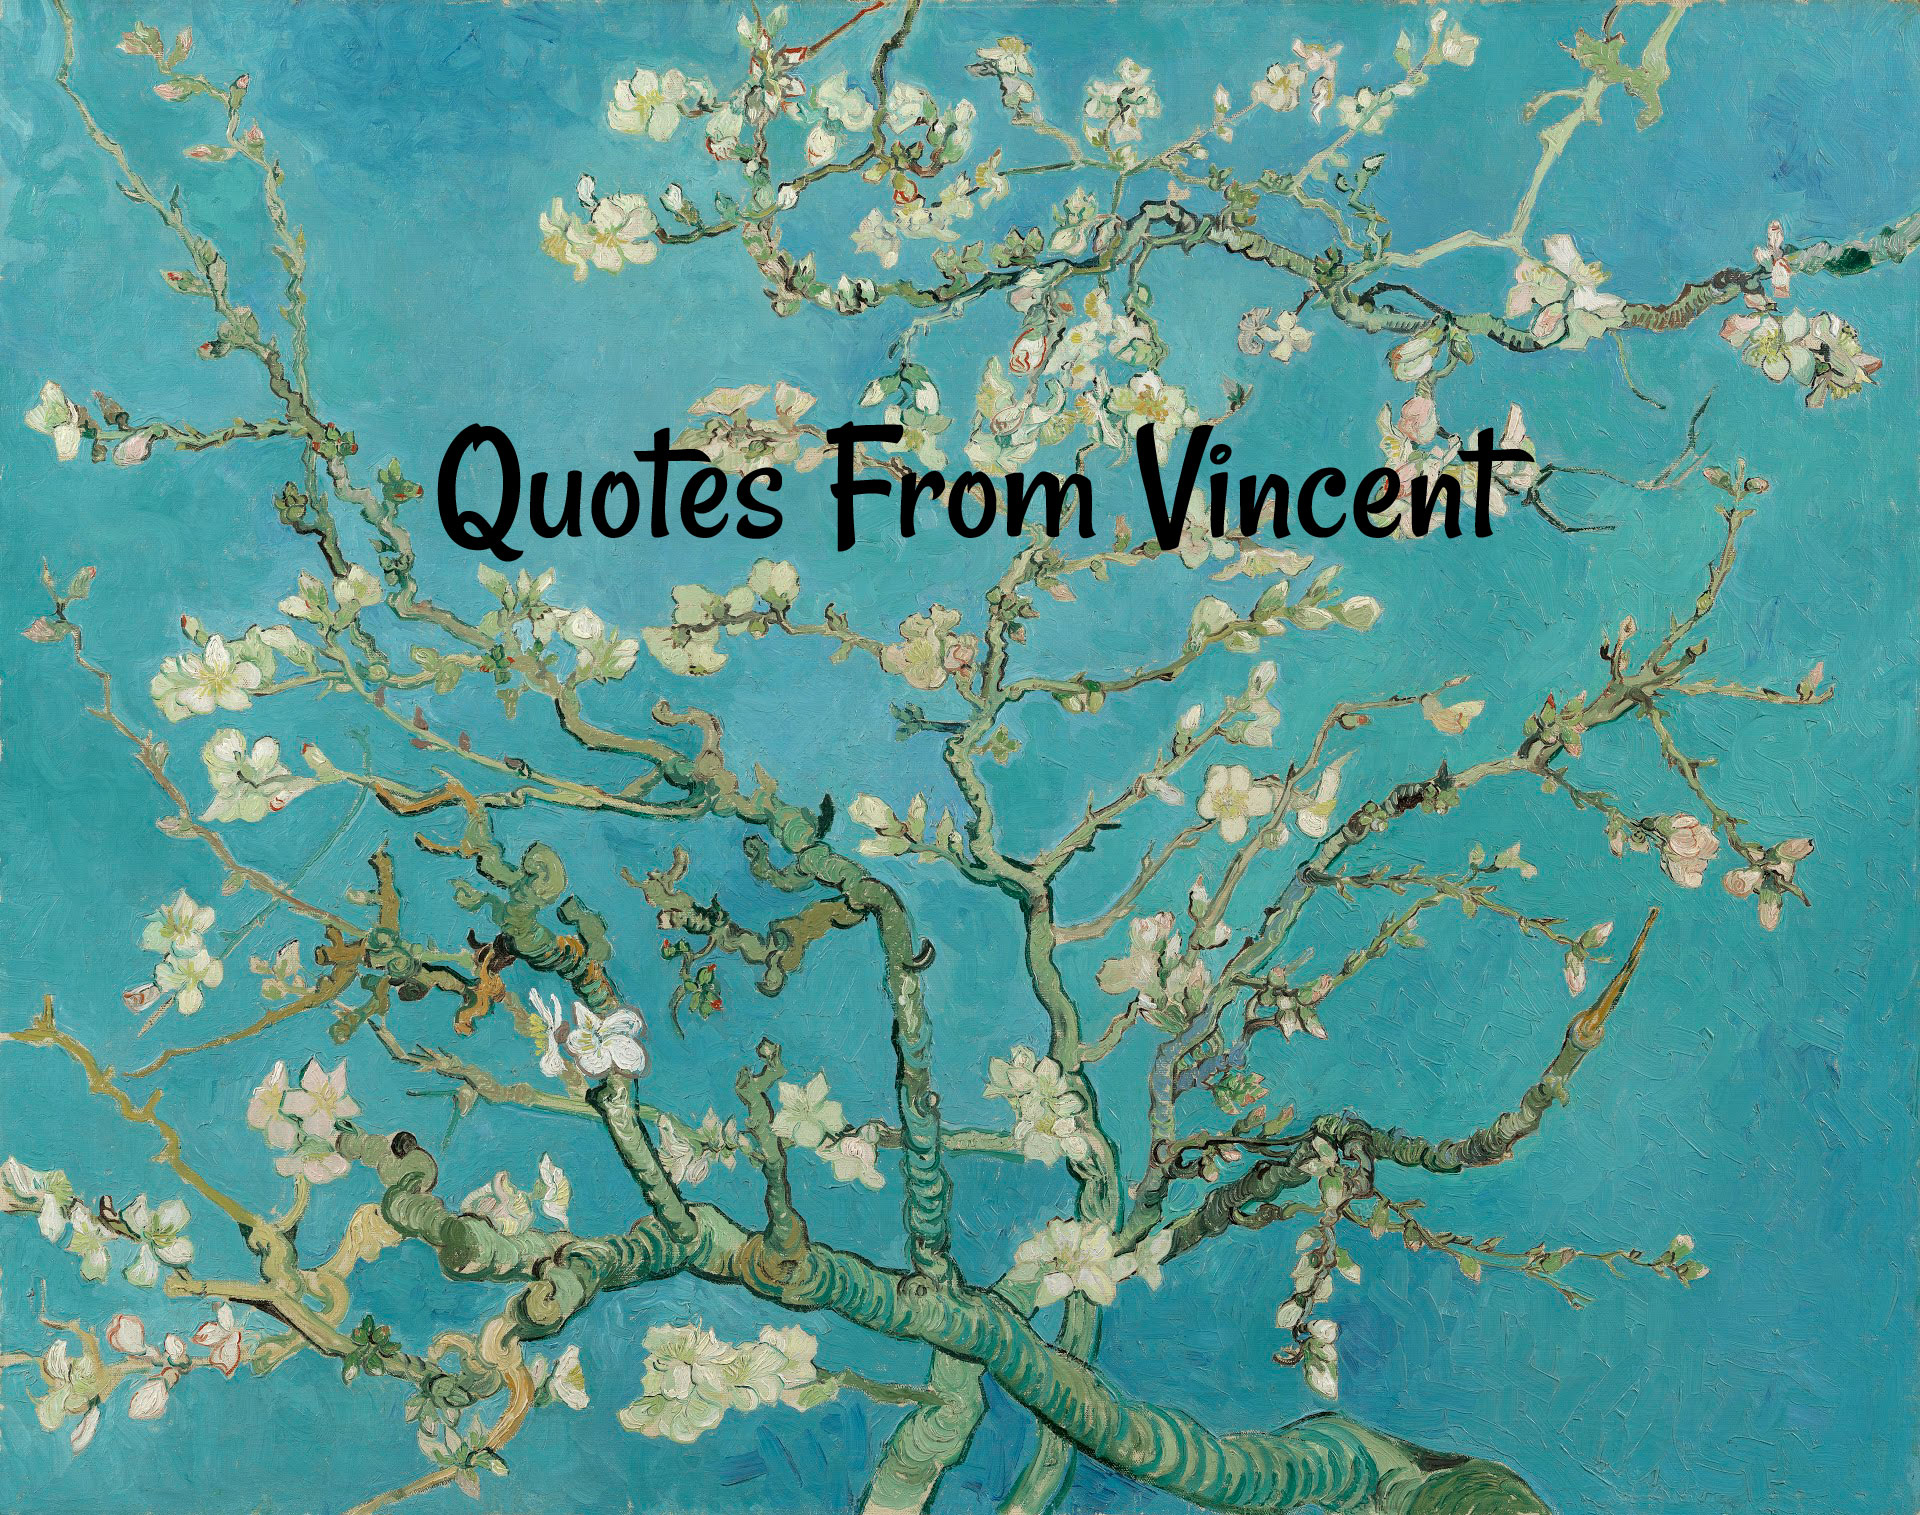 25 Quotes from Vincent for Dreamers on Starry, Starry Nights